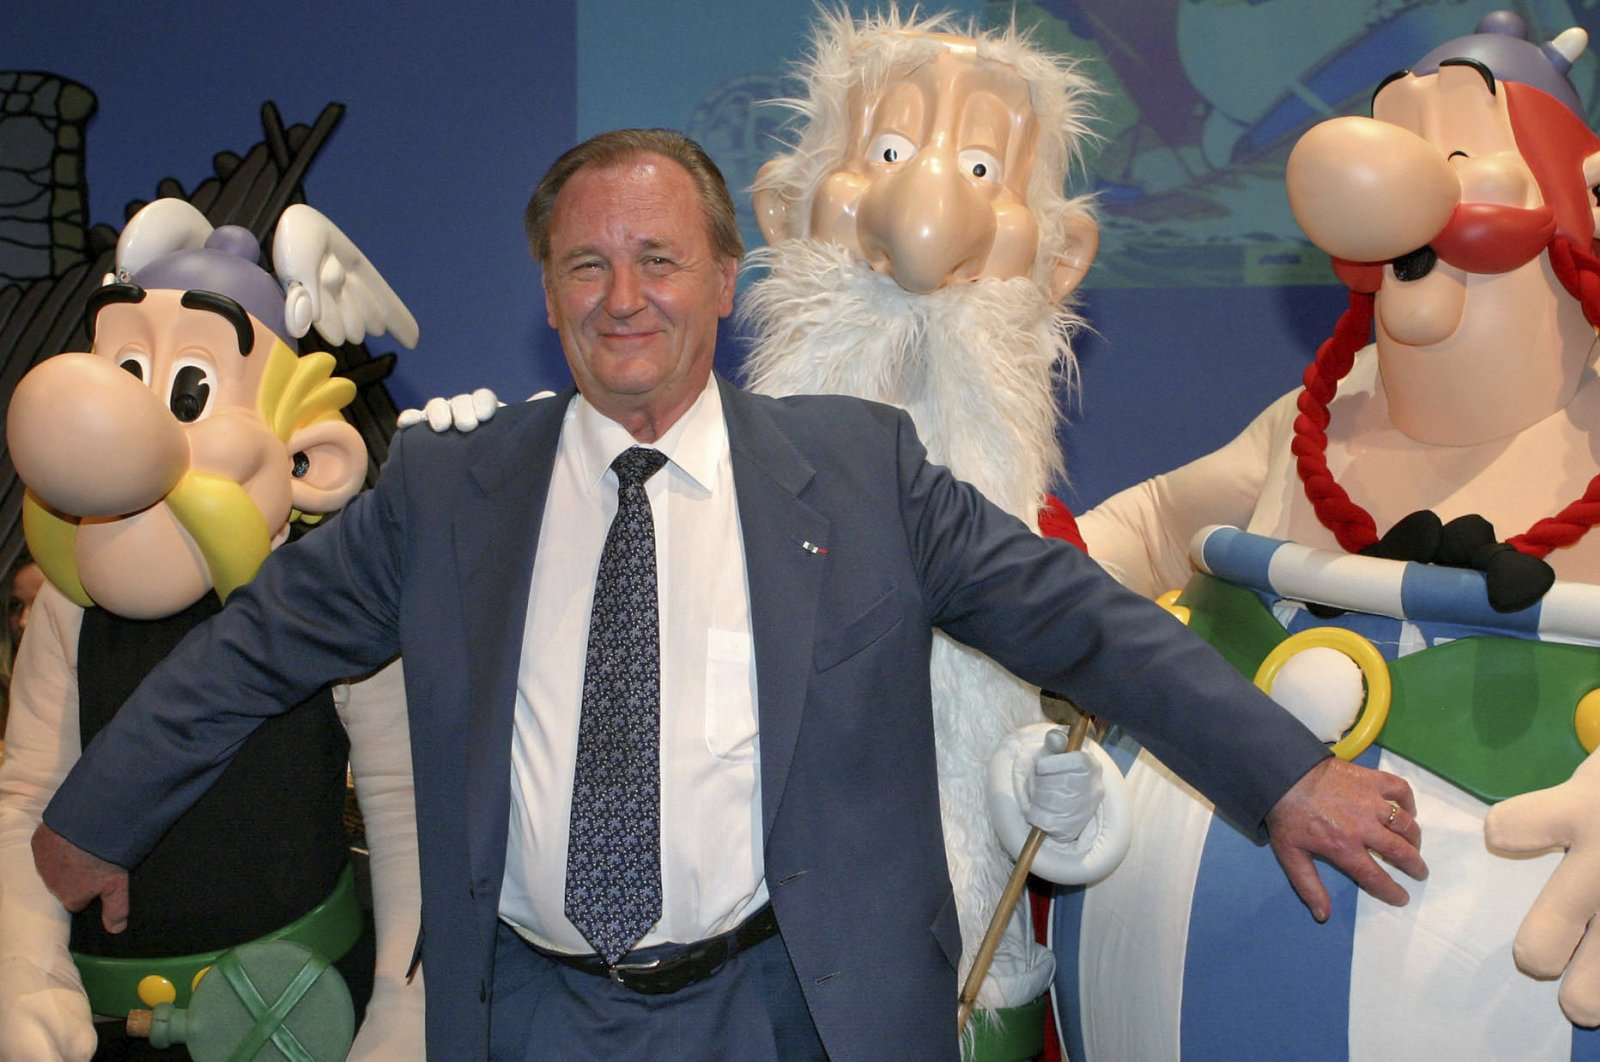 """In this June 12, 2004 file photo, French illustrator Albert Uderzo poses with characters of his famous comics, Asterix, left, druid Miraculix, behind, and Obelix , right, during the awarding of the so-called """"Max & Moritz"""" award by the Erlangen Comic Salon2004 in Erlangen, southern Germany. (AP Photo)"""